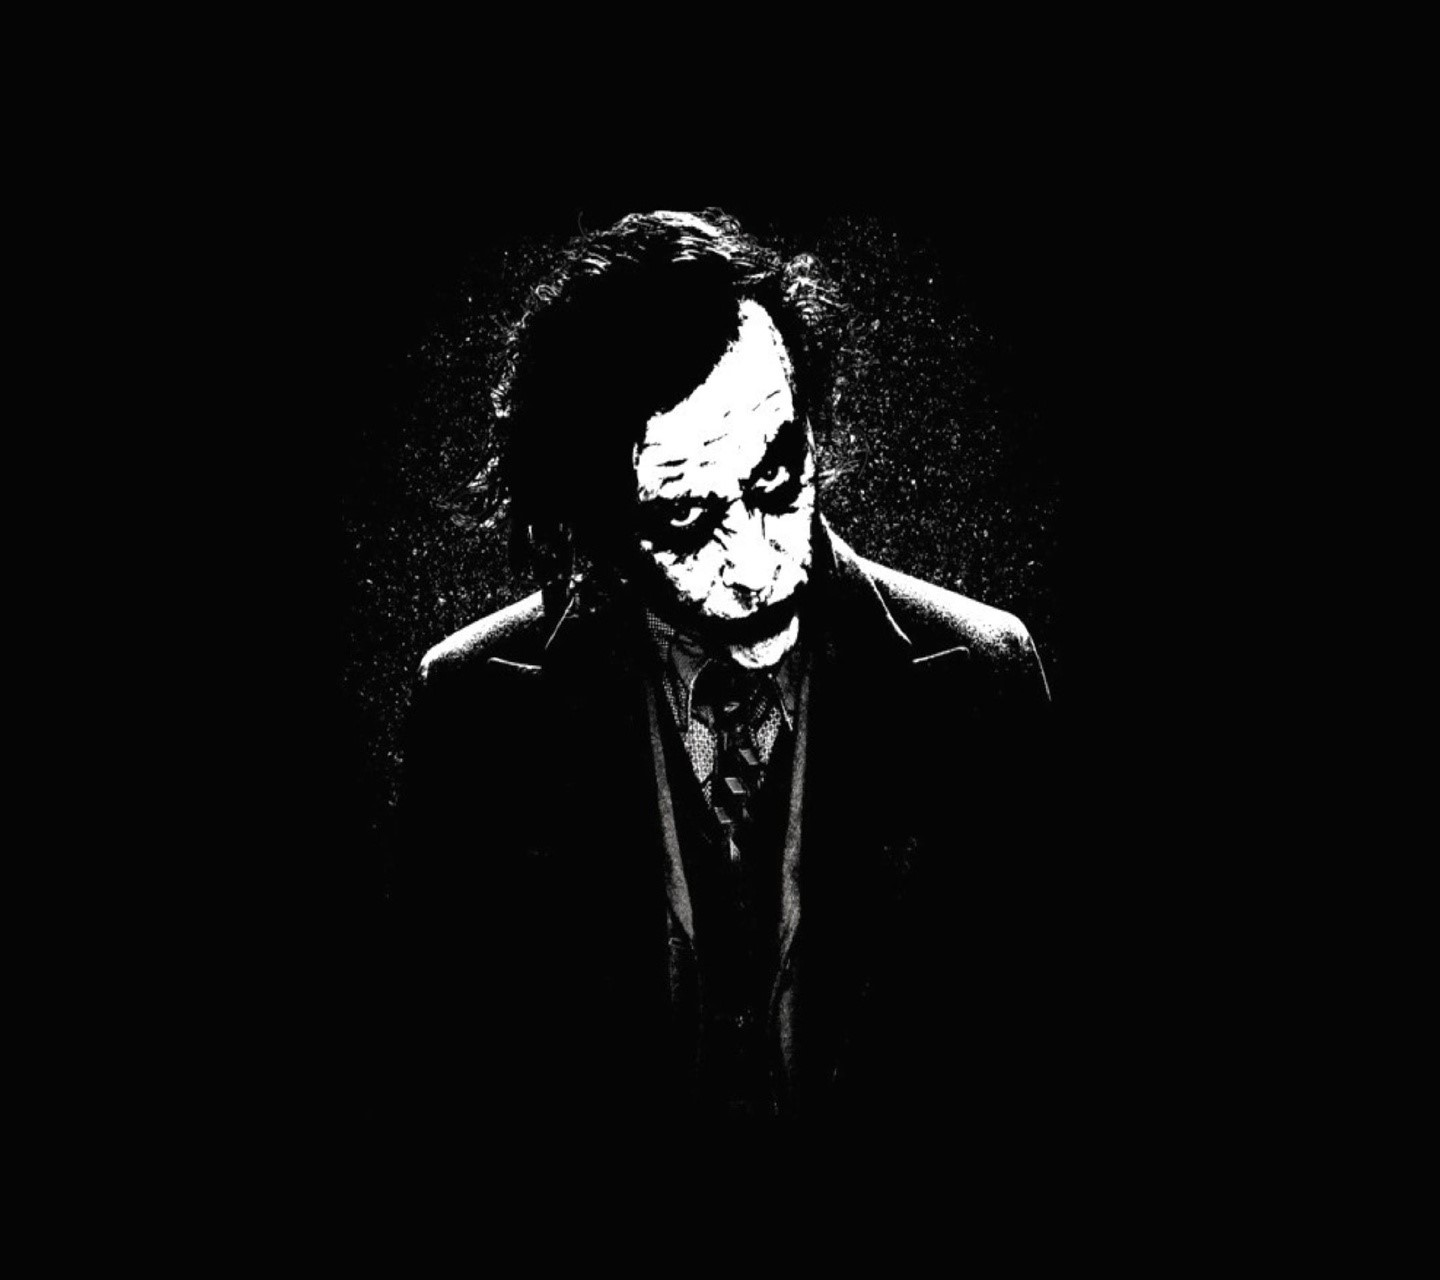 joker dark knight wallpaper 10182566